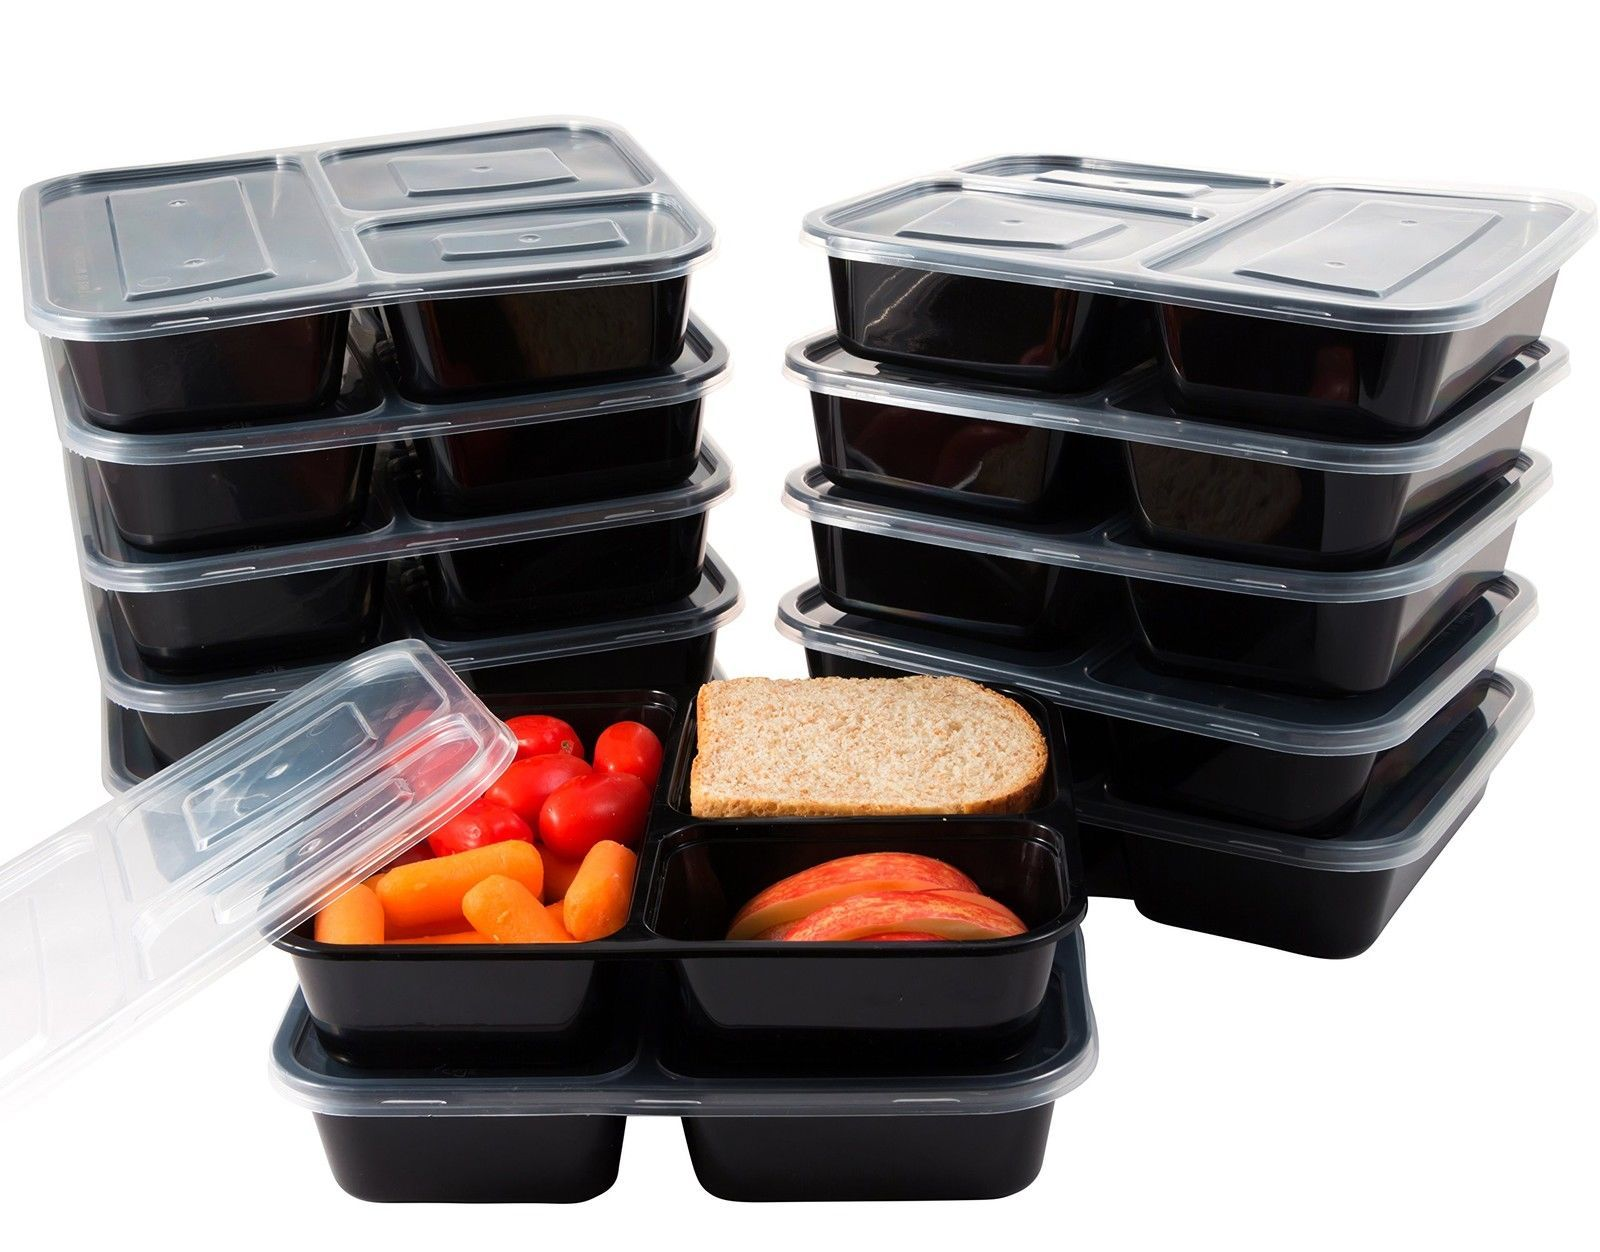 Frozen Food Storage: Keeping It Safe and Tasty - WebMD